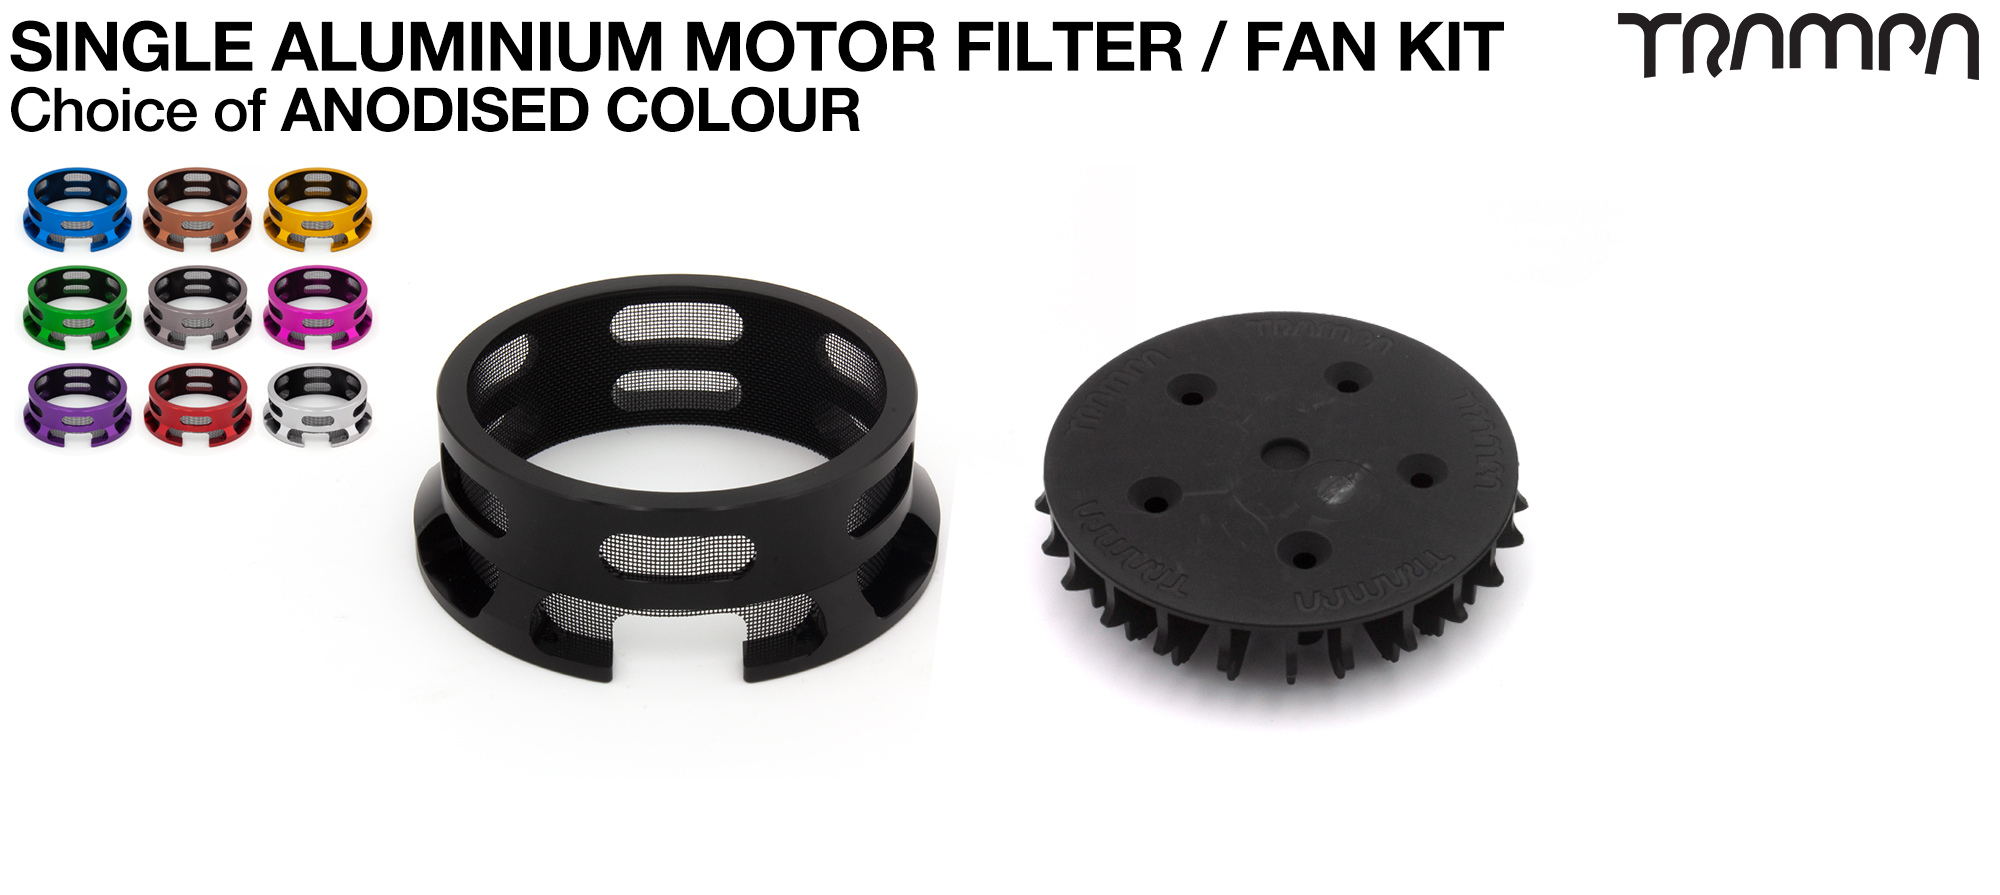 14FiFties T6 Motor protection Sleeve with BLACK particle Filter - SINGLE